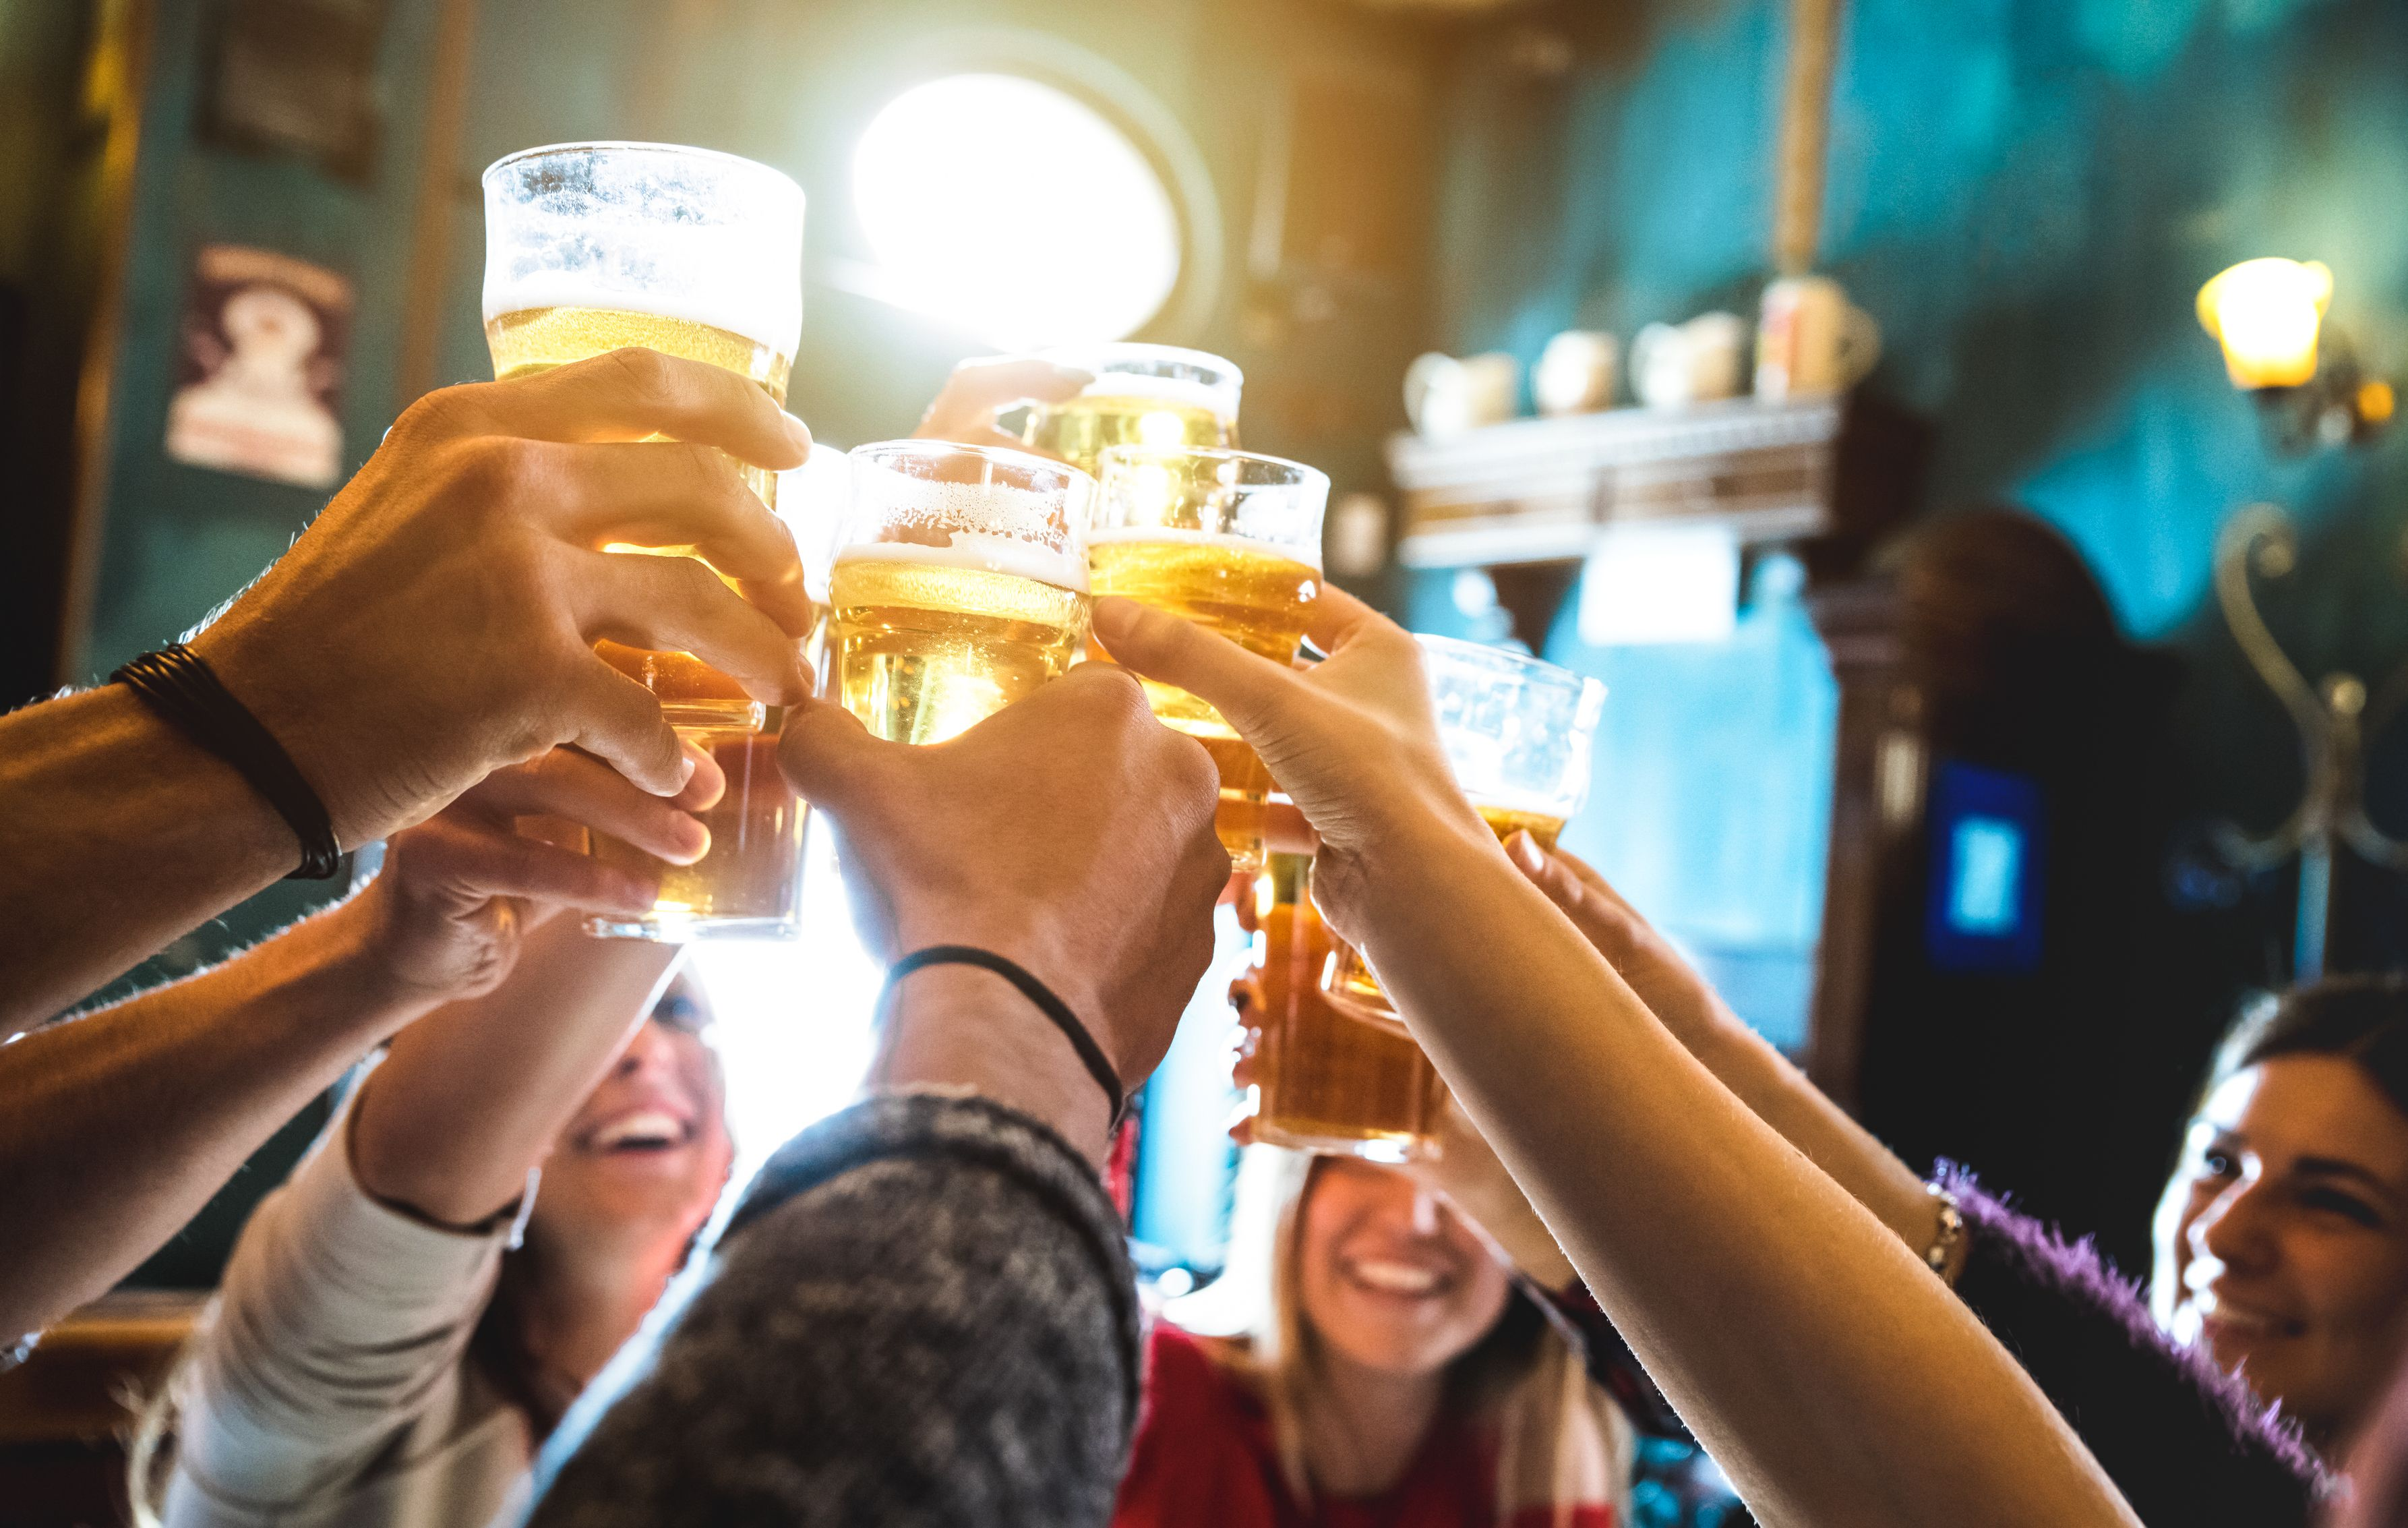 Is Intuitive Drinking a Good Way to Cut Back on Alcohol?